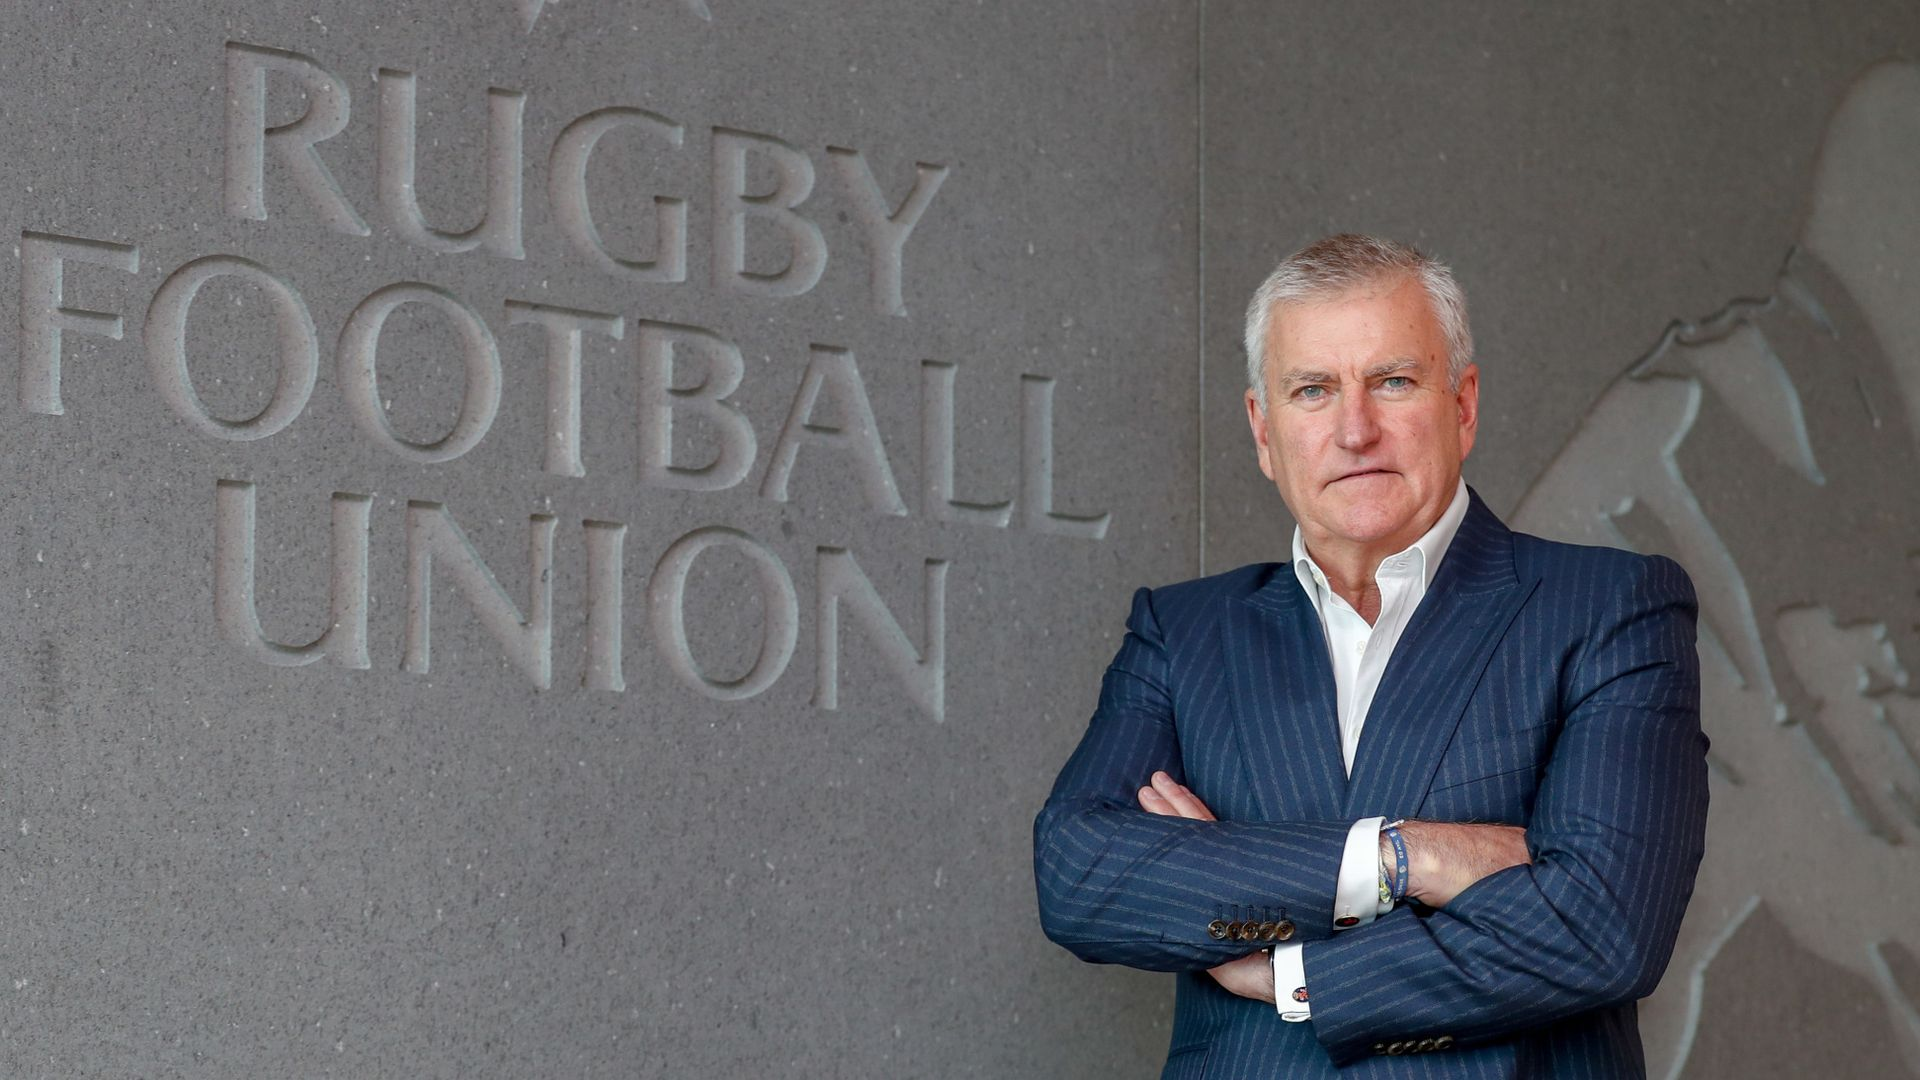 'Rugby union could become summer sport'